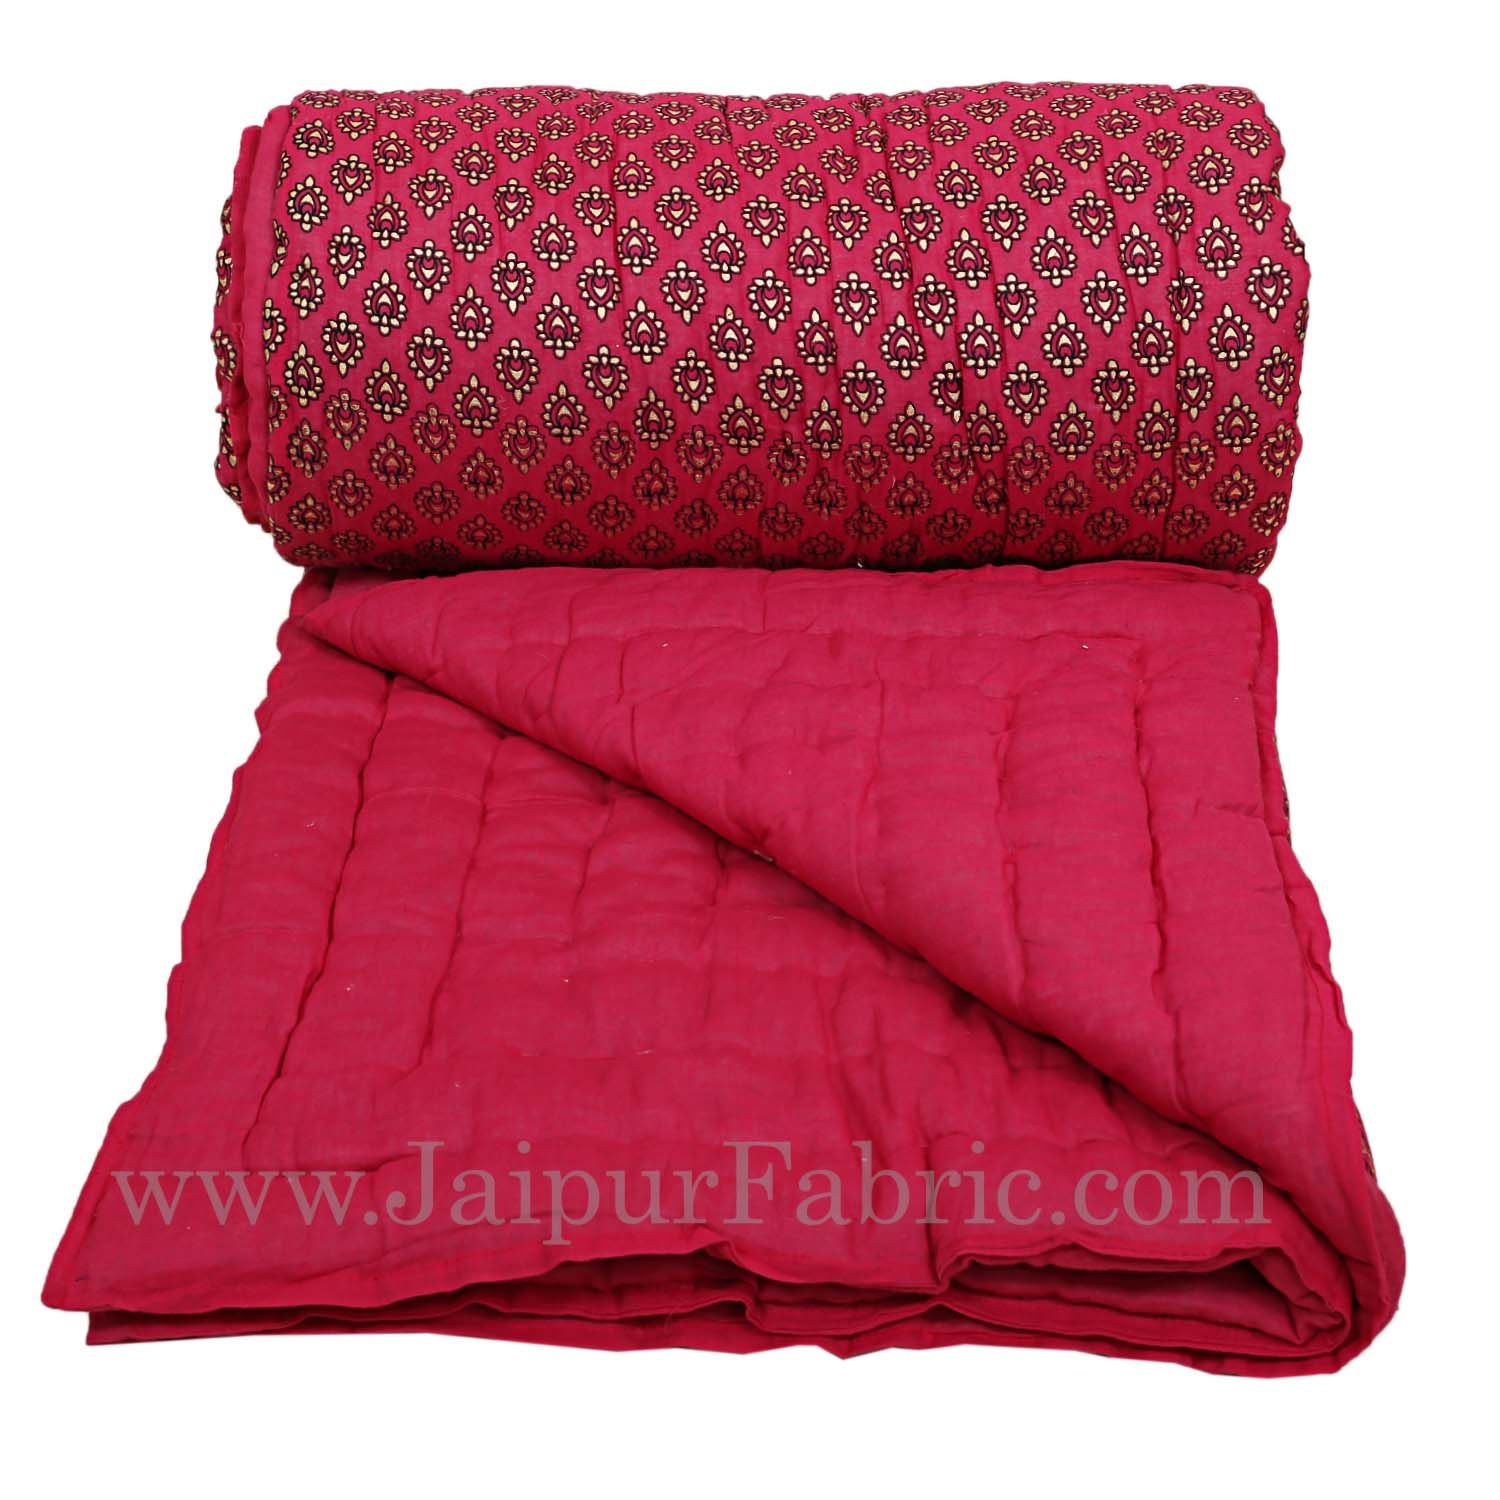 jaipuri Double Quilt Magenta (Rani) Base Golden Print Fine Cotton